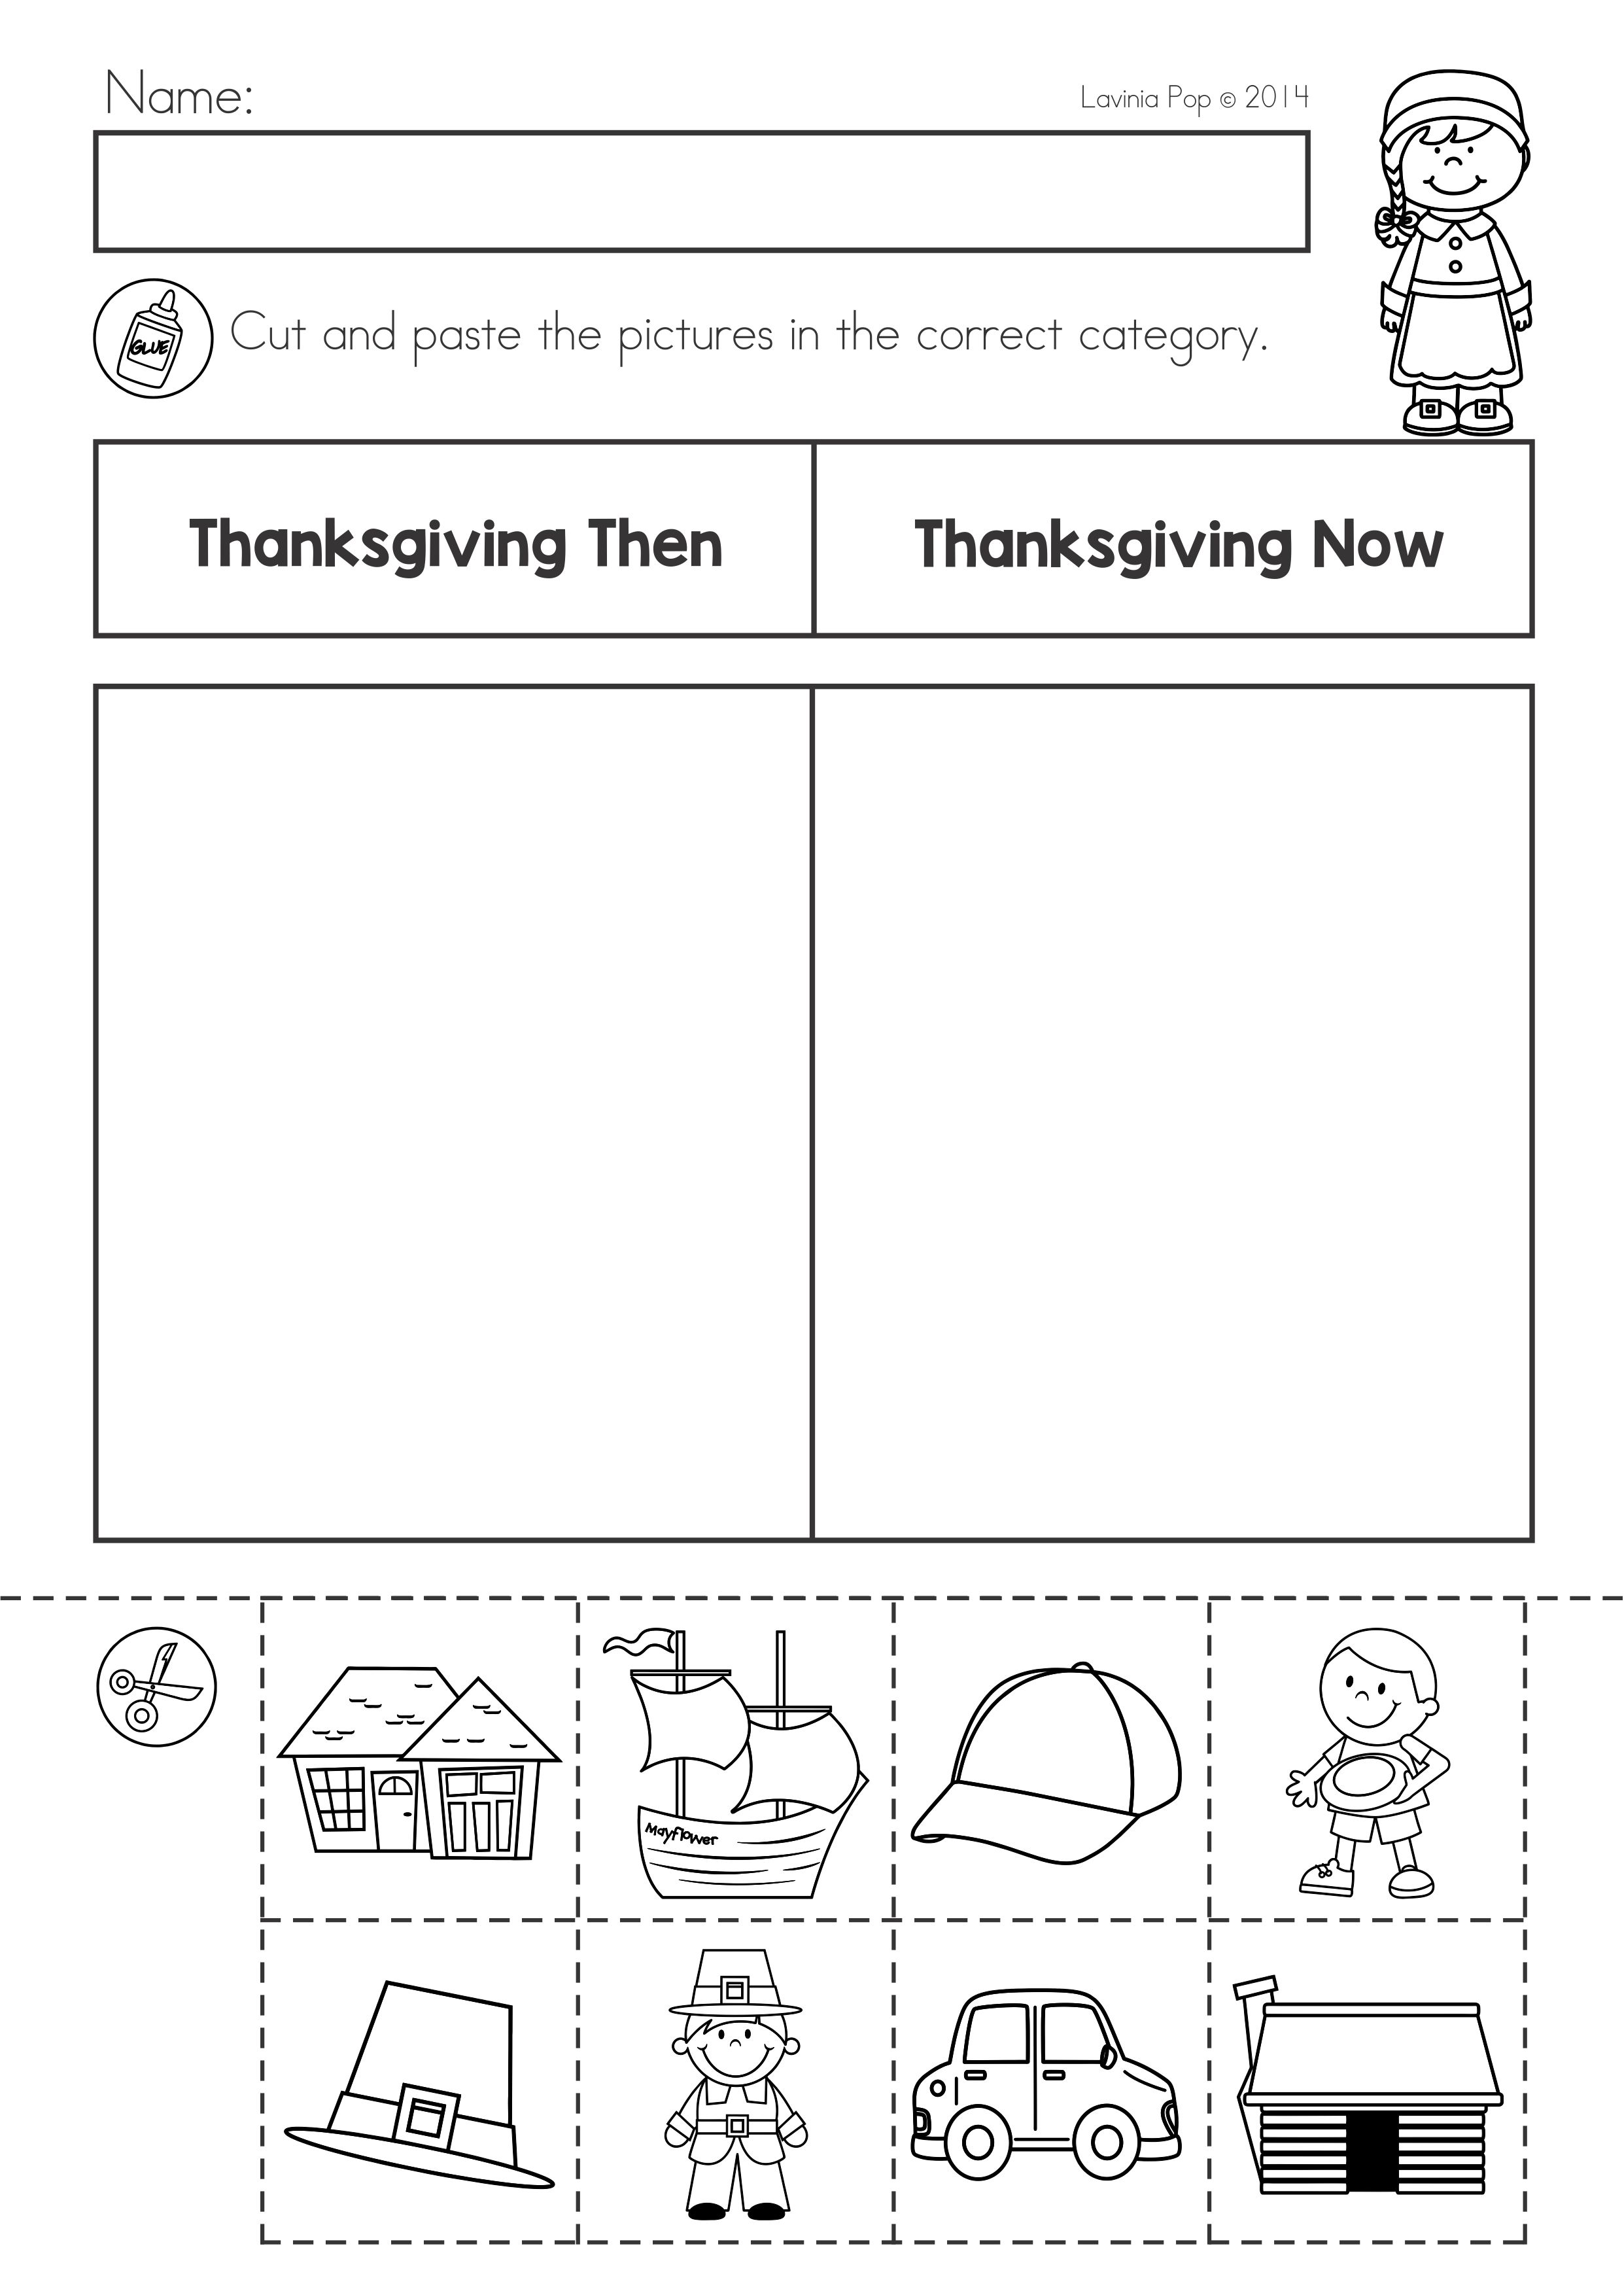 Thanksgiving Math Literacy Worksheets And Activities For Kindergarten Now And Thanksgiving Worksheets Thanksgiving Math Thanksgiving Worksheets Kindergarten